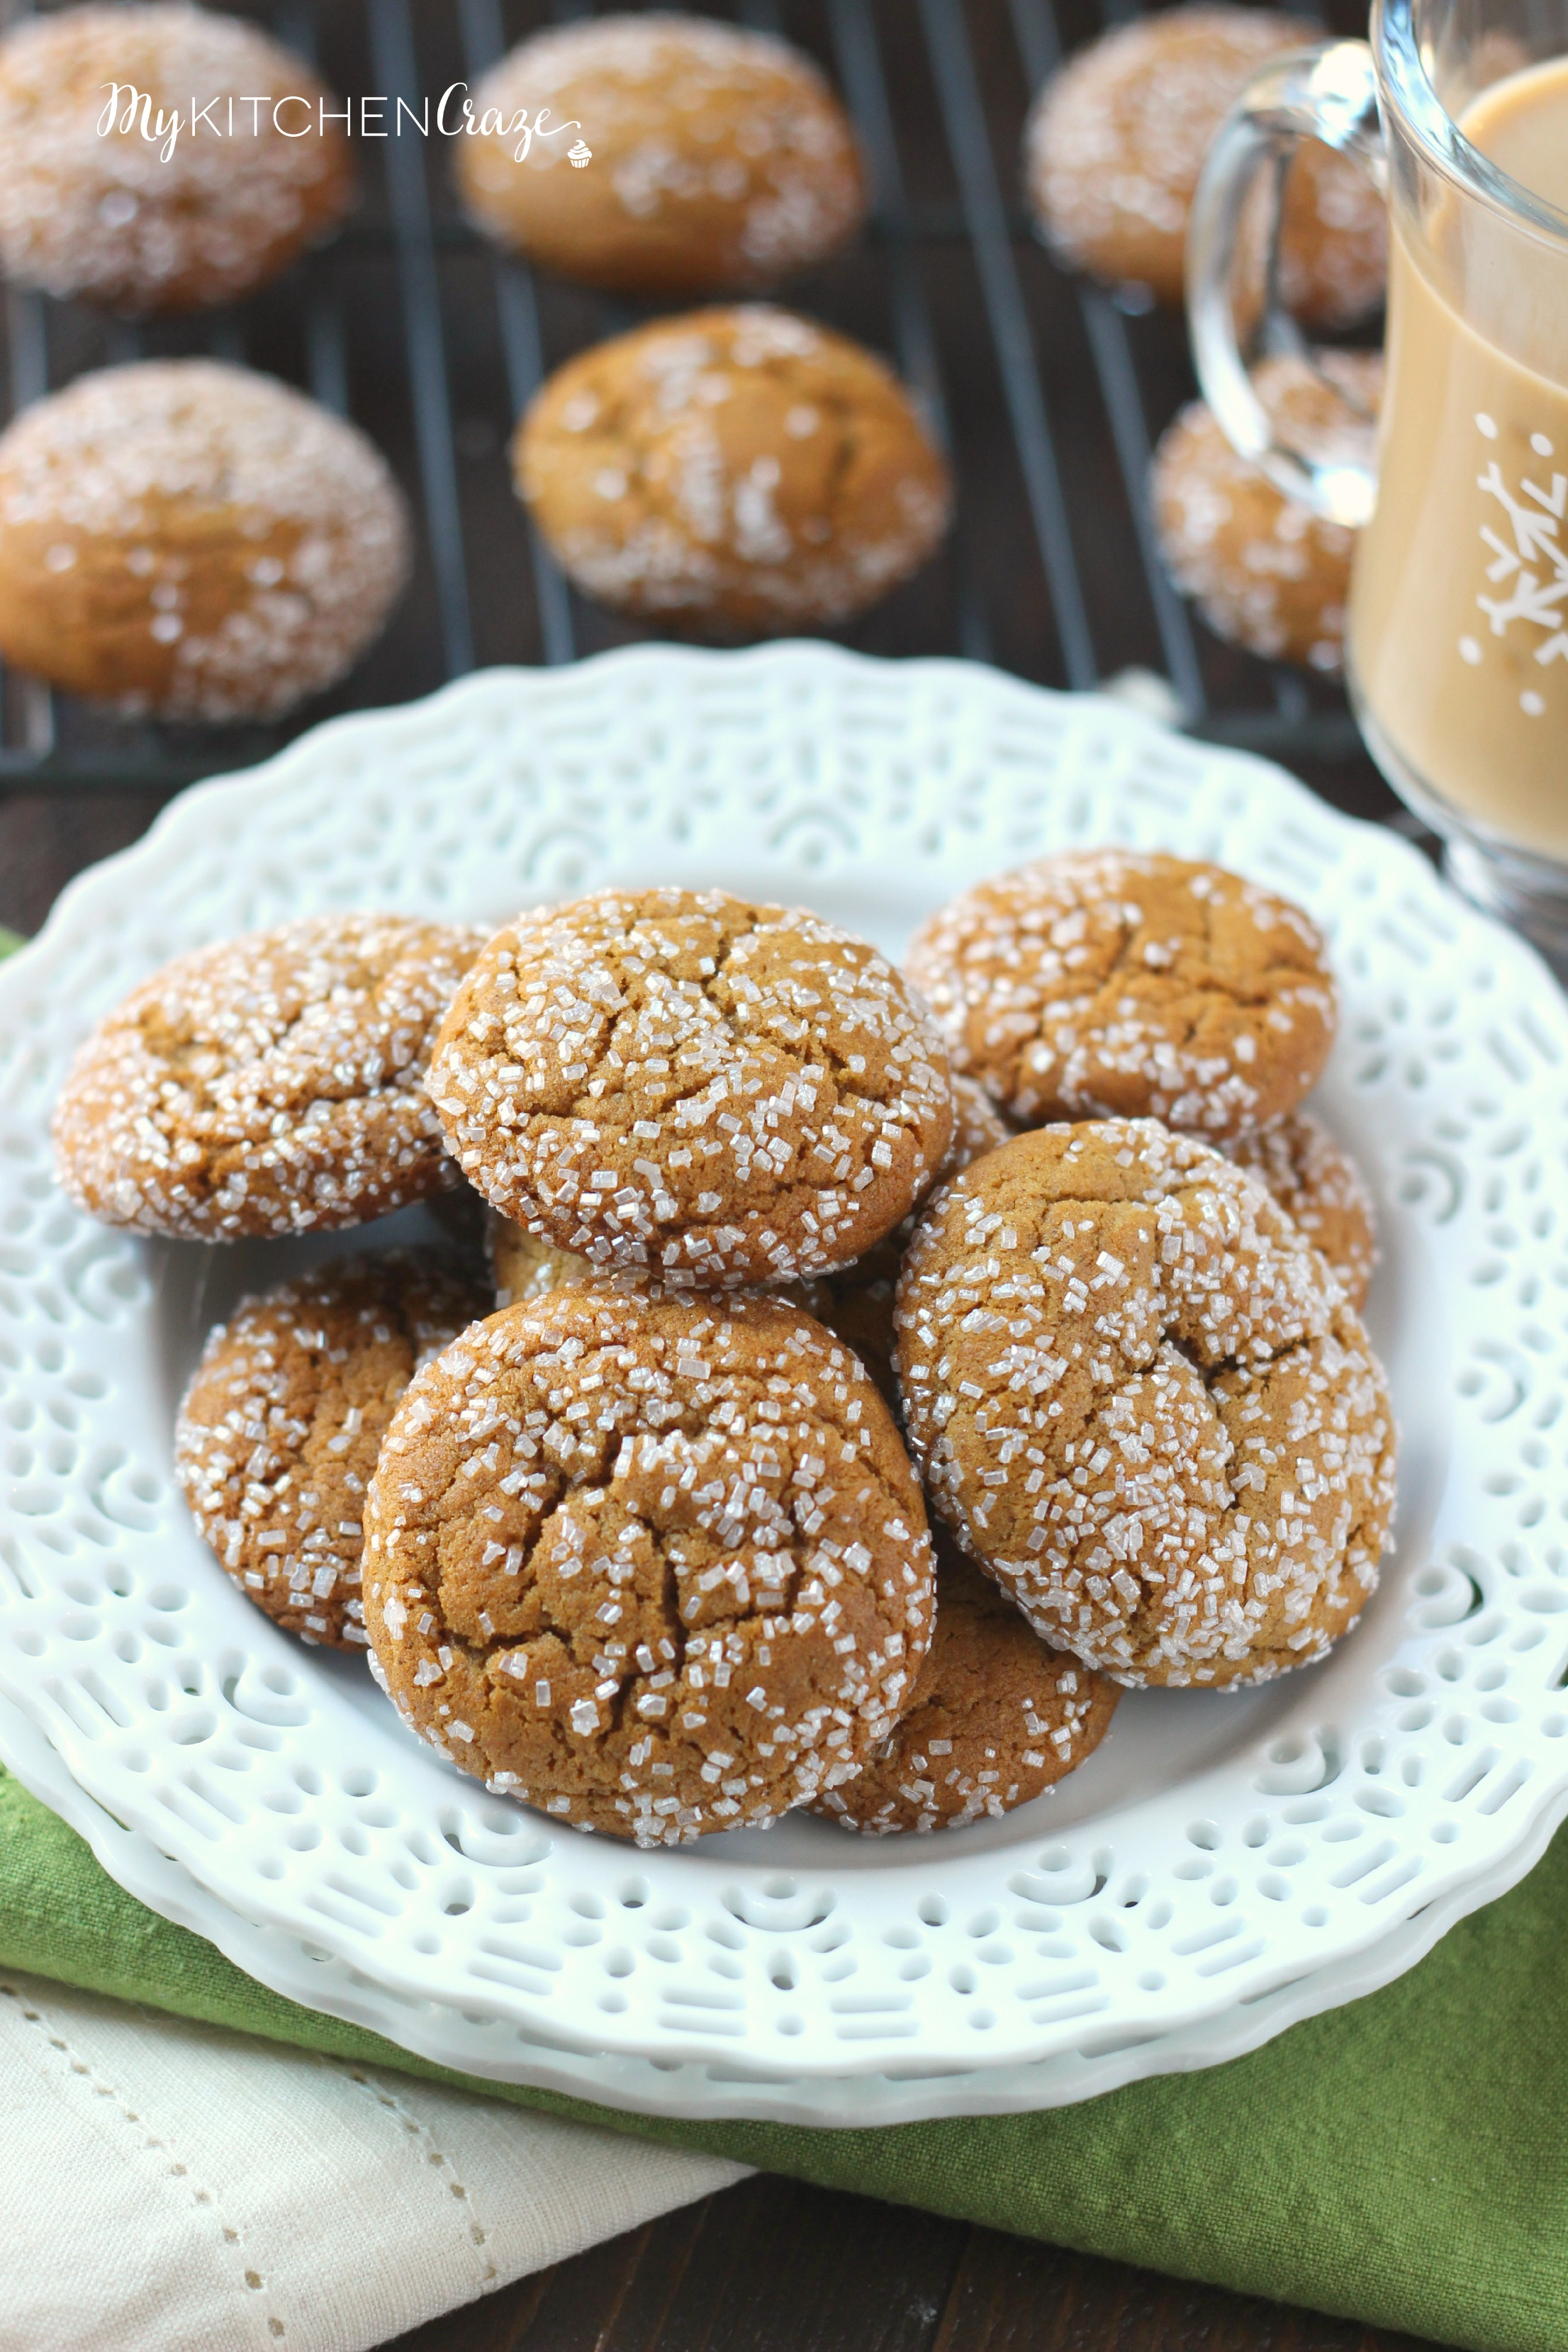 IMG_4673Molasses Crinkle Cookies ~ mykitchencraze.com ~ A delicious, soft chewy molasses crinkle cookie. Loaded with cinnamon, ginger and cloves. These cookies will be a hit!